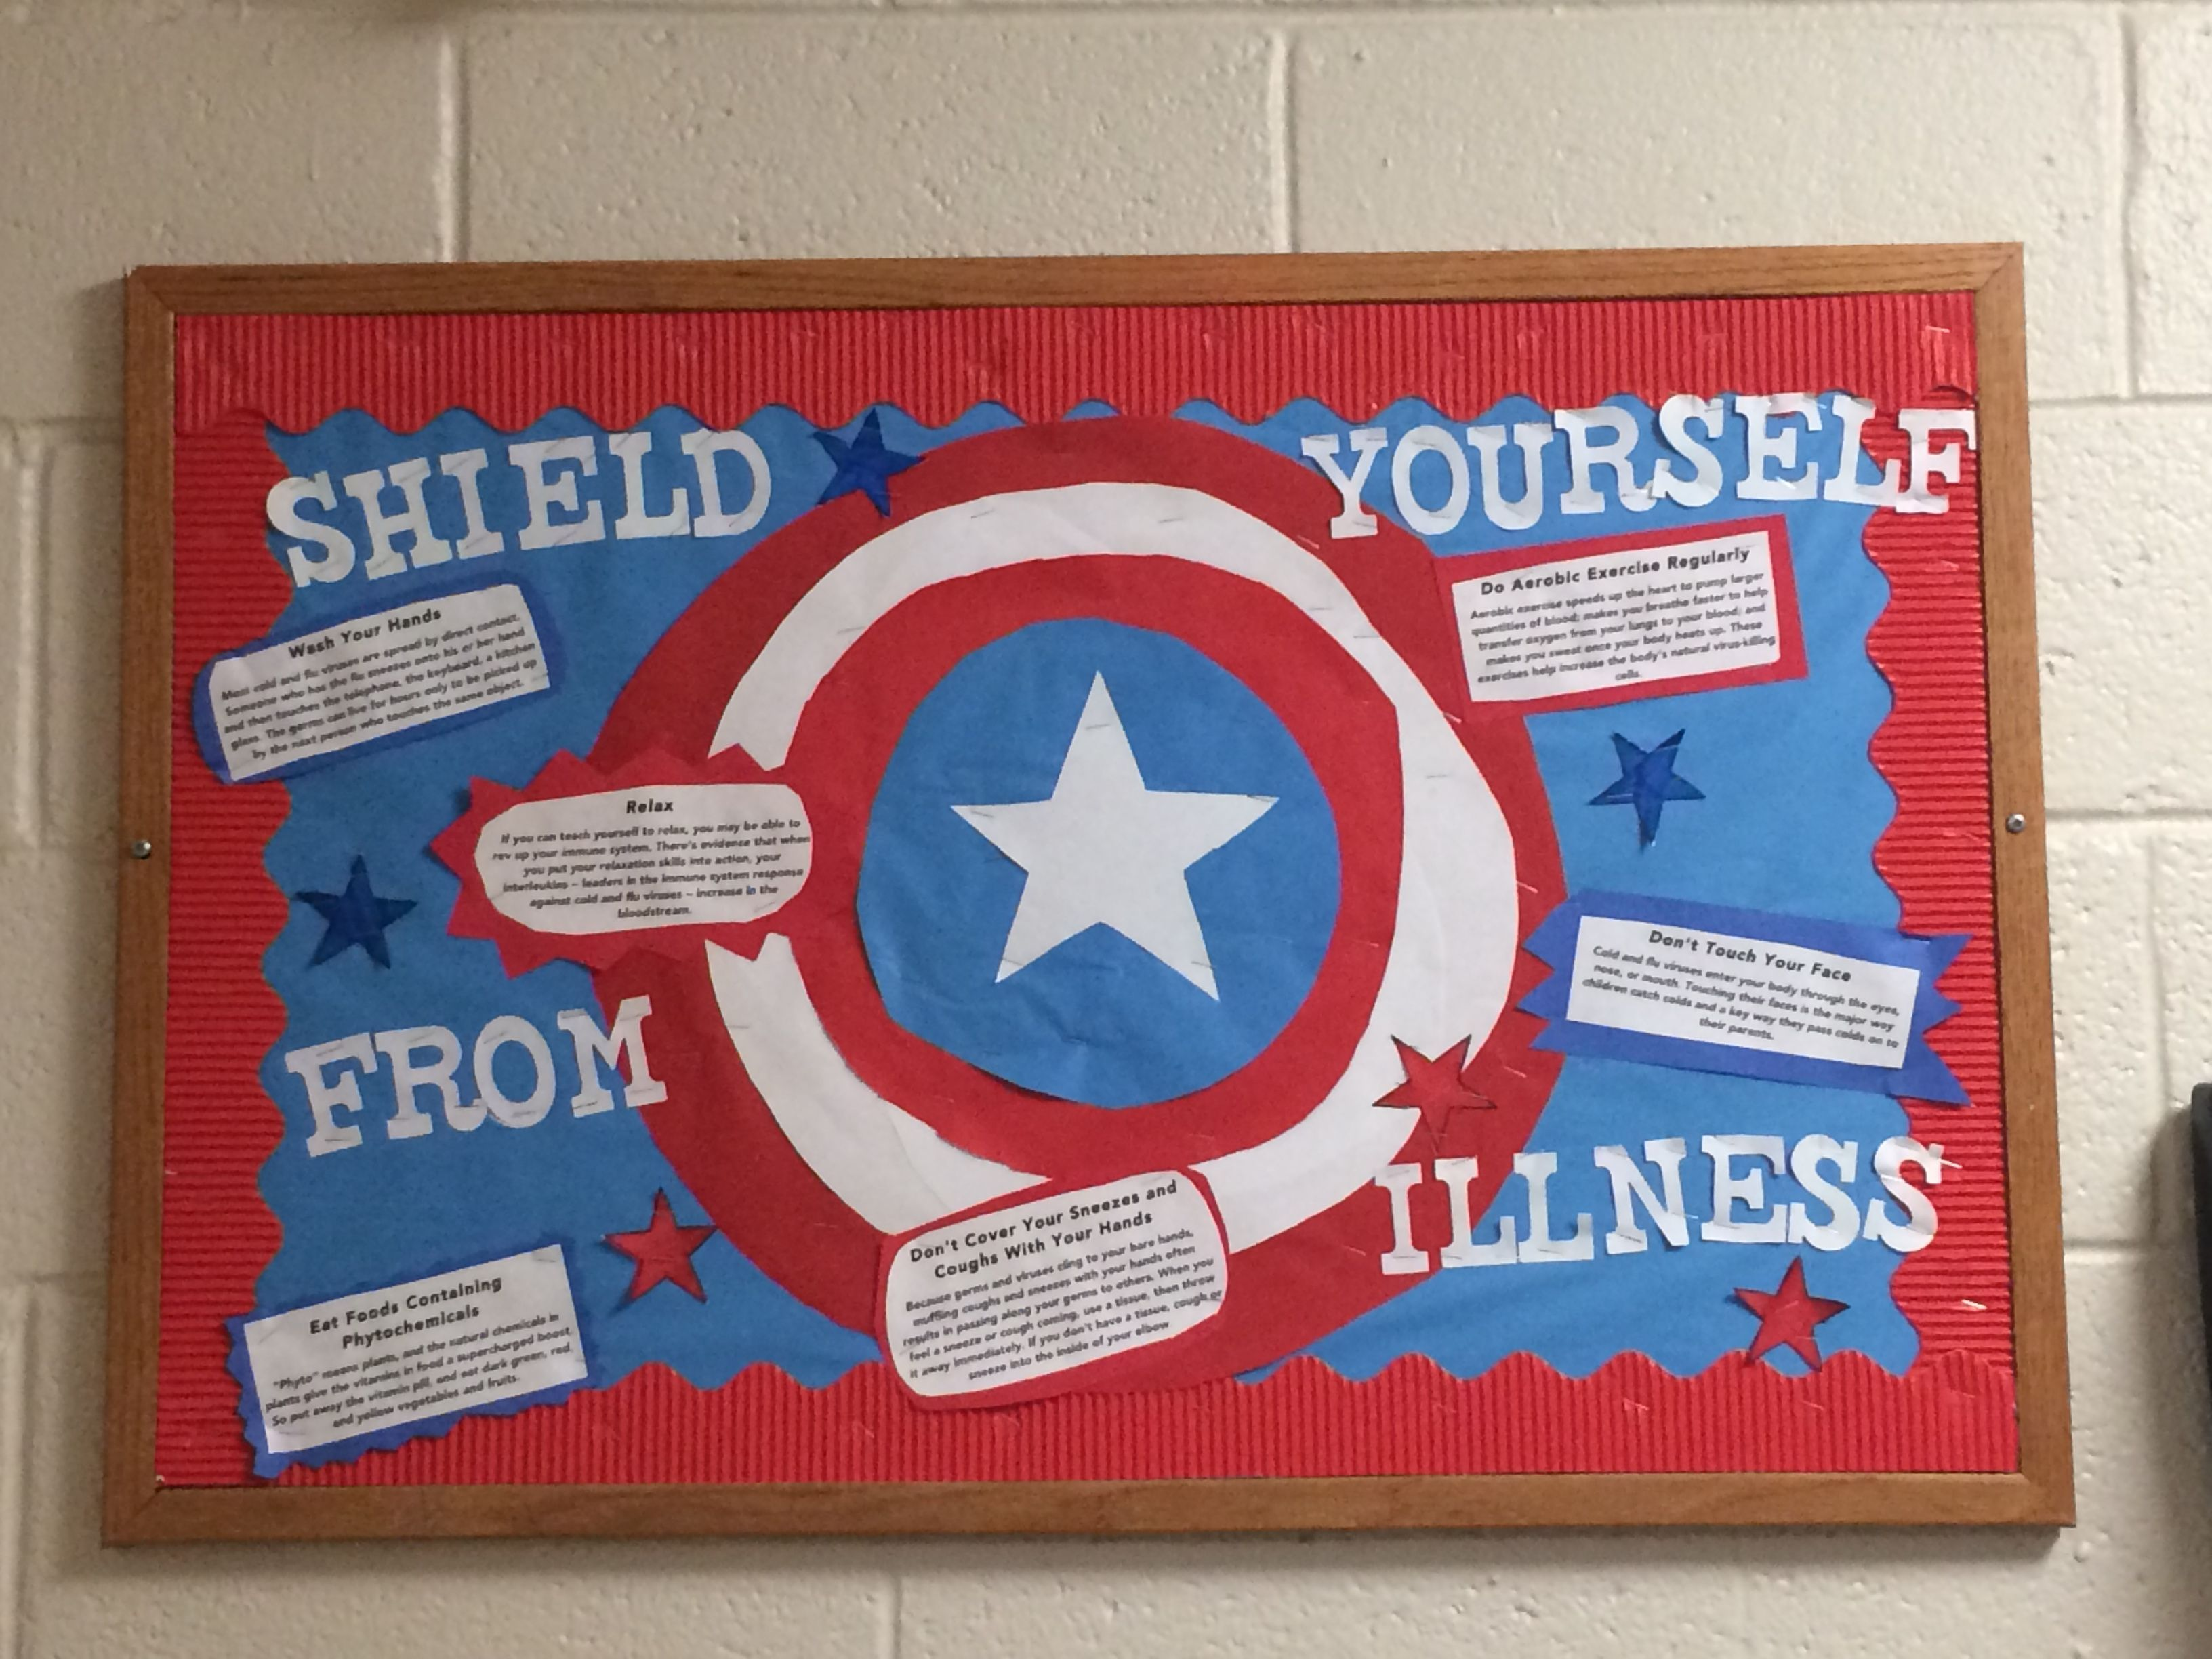 Superhero Bulletin Board- Shield Yourself From Illness Captain America RA Bulletin Board #rabulletinboards Superhero Bulletin Board- Shield Yourself From Illness Captain America RA Bulletin Board #rabulletinboards Superhero Bulletin Board- Shield Yourself From Illness Captain America RA Bulletin Board #rabulletinboards Superhero Bulletin Board- Shield Yourself From Illness Captain America RA Bulletin Board #rabulletinboards